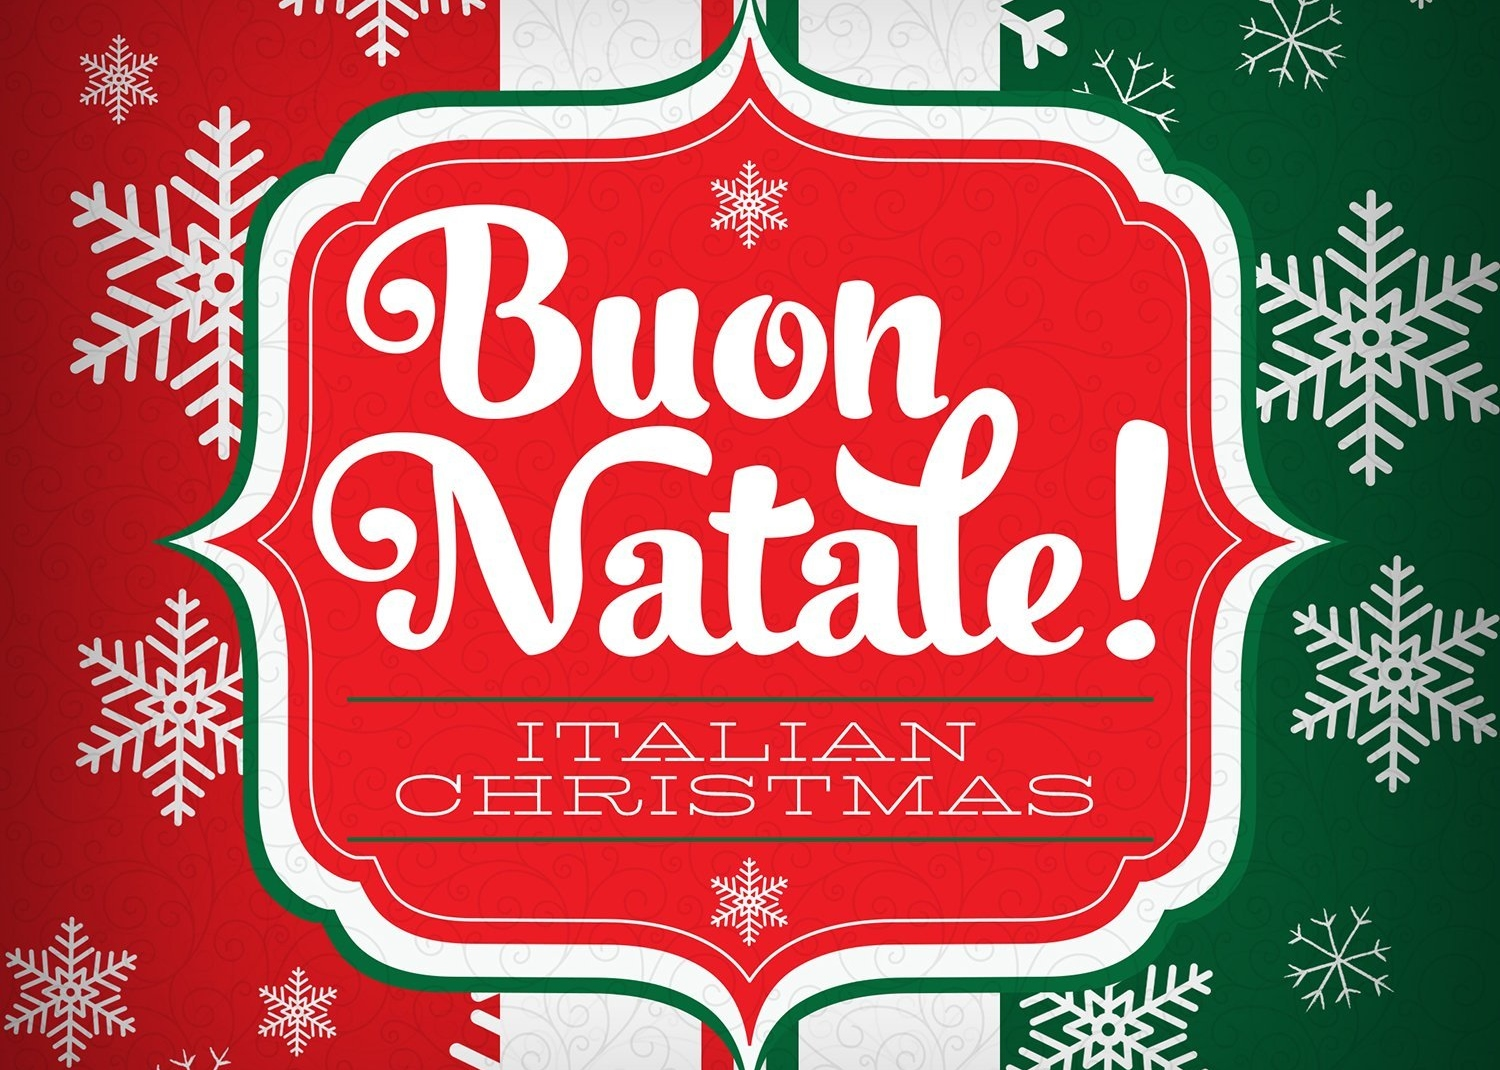 Christmas In Italy.We The Italians Italian Traditions Christmas In Italy